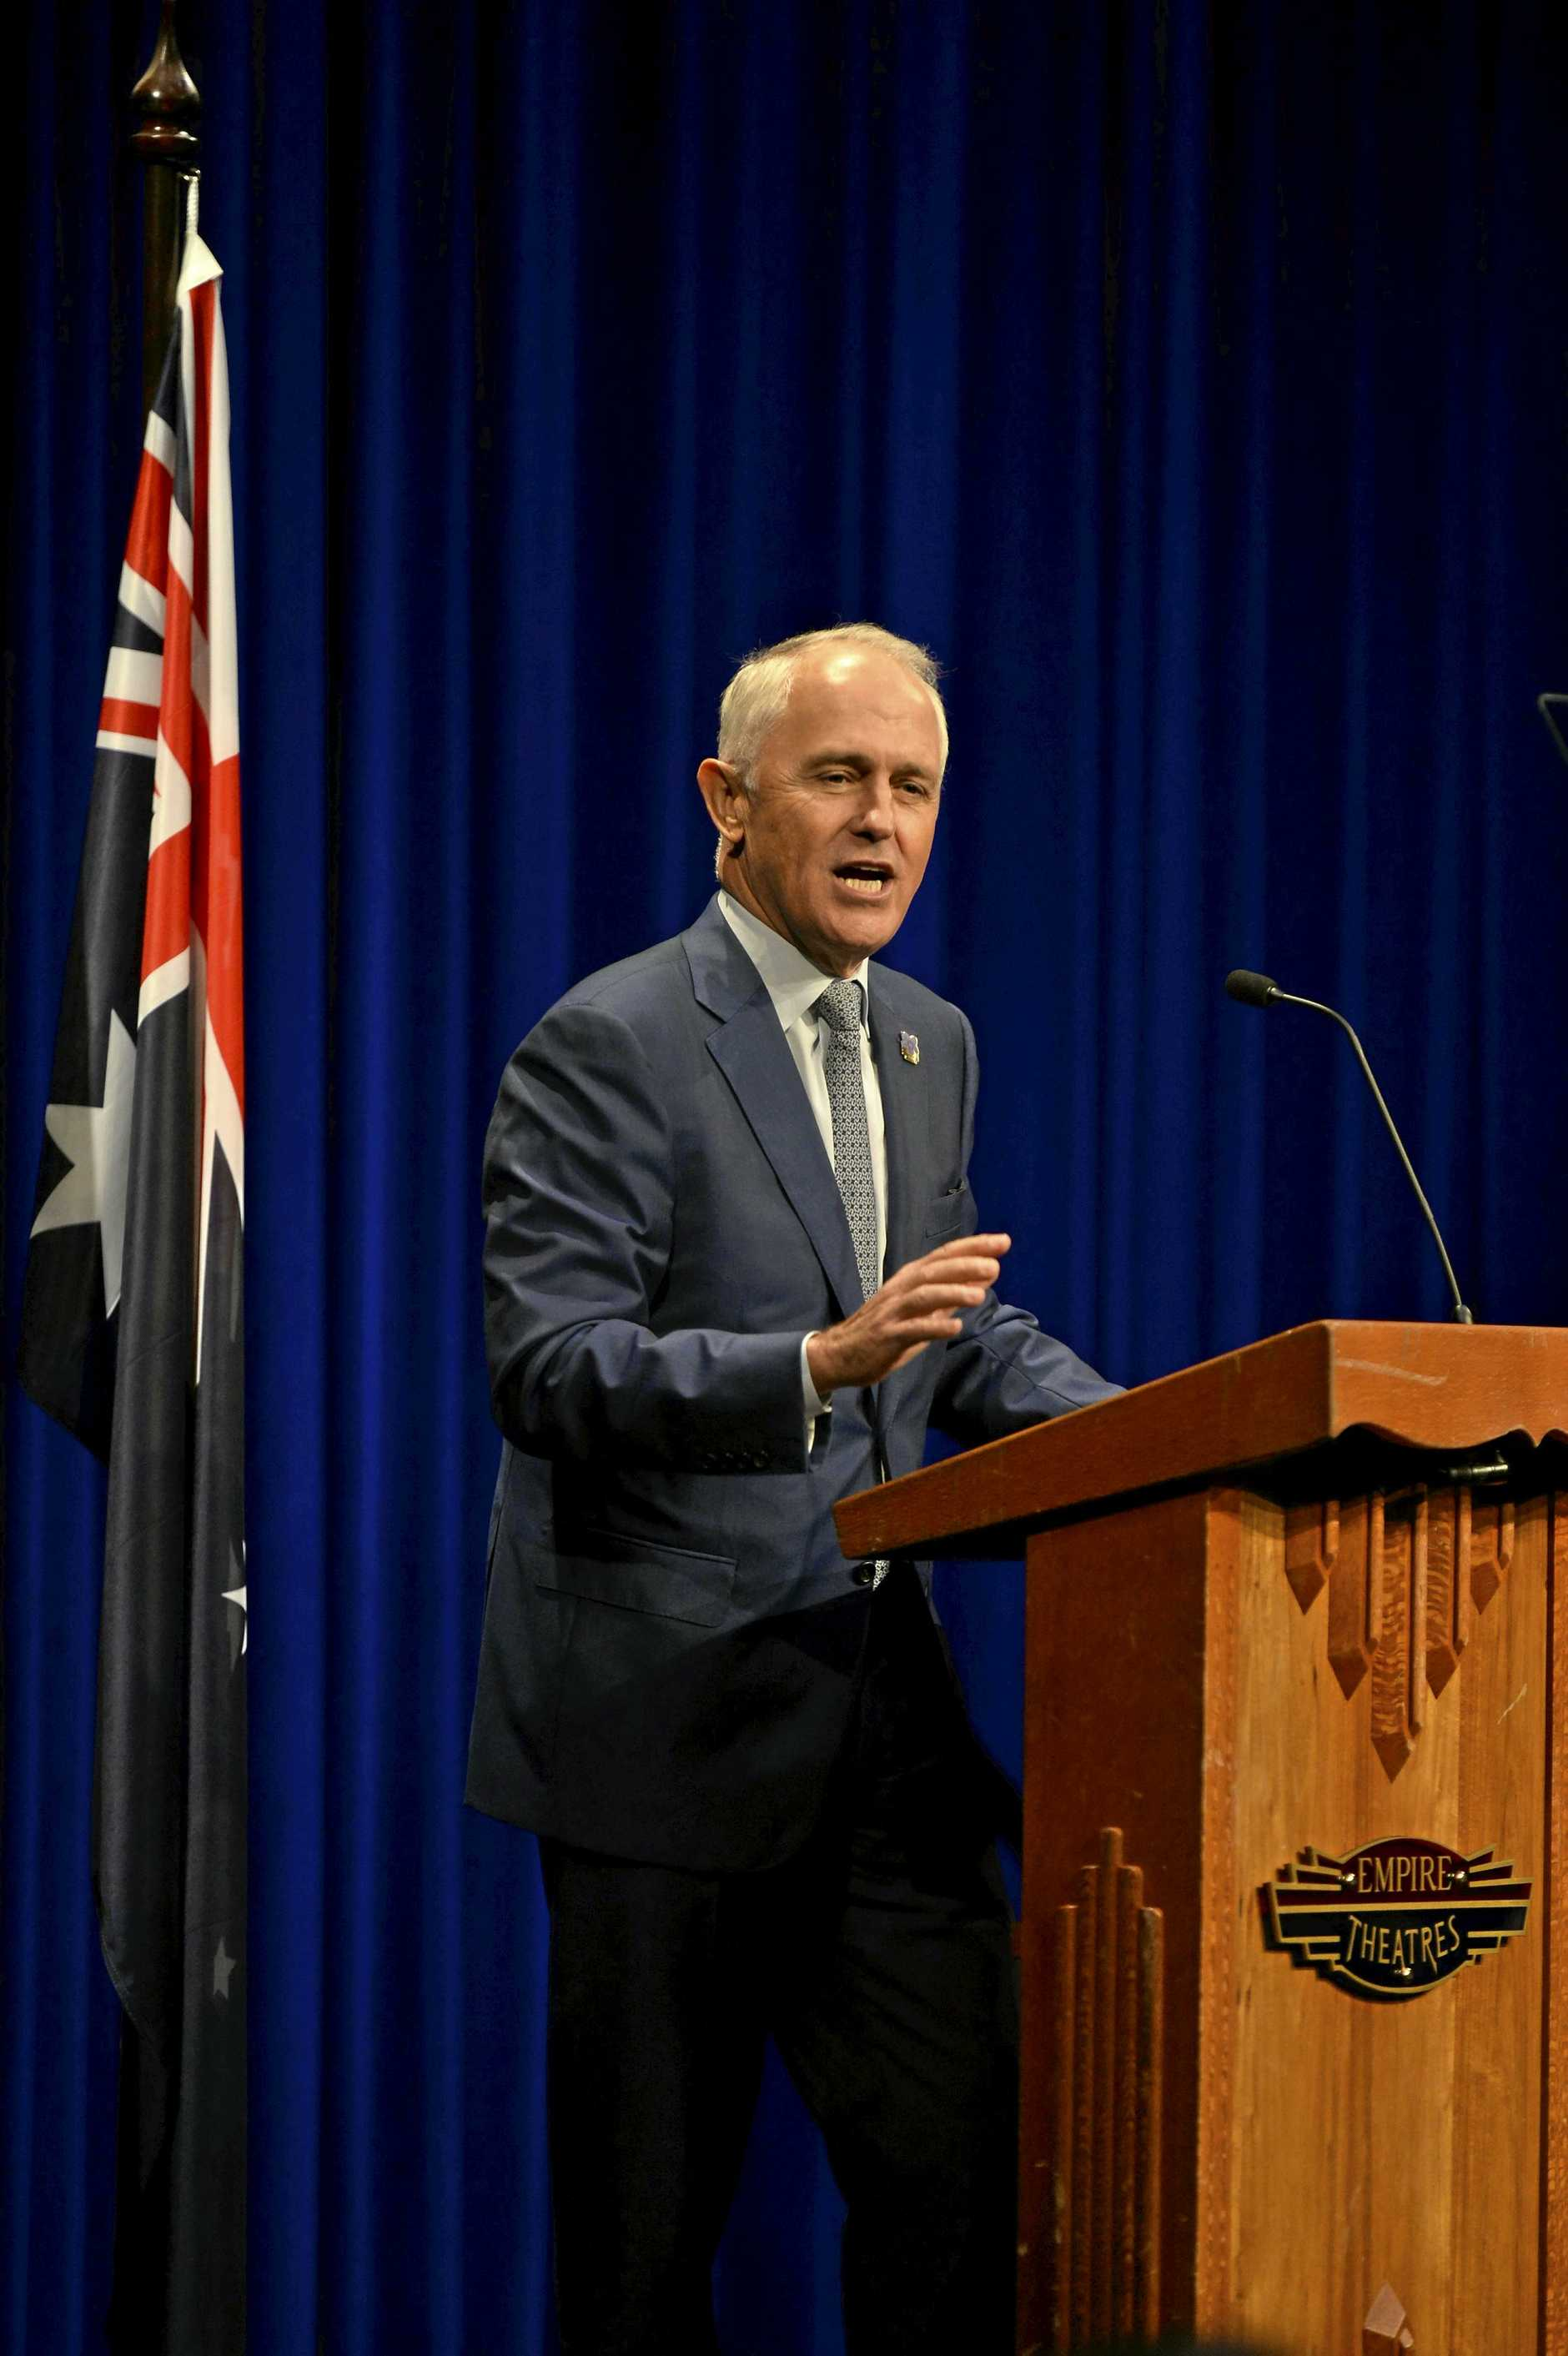 Prime Minister Malcolm Turnbull has slammed Bill Shorten over Adani.